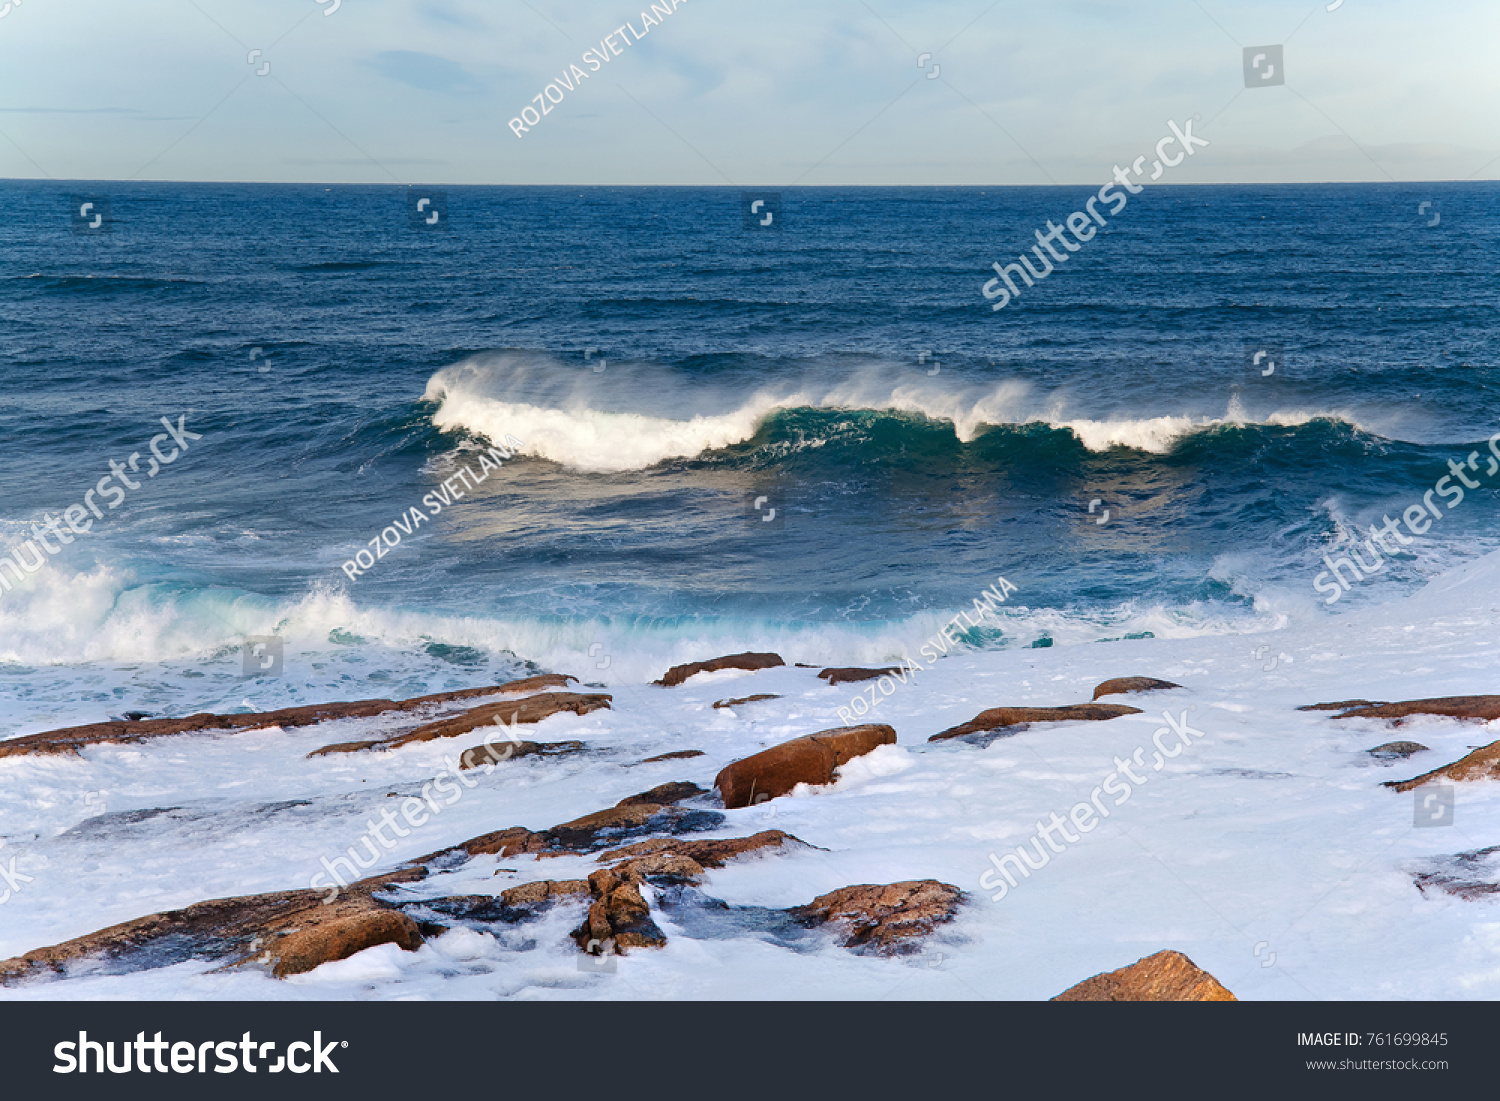 The harsh beaches of the Barents Sea